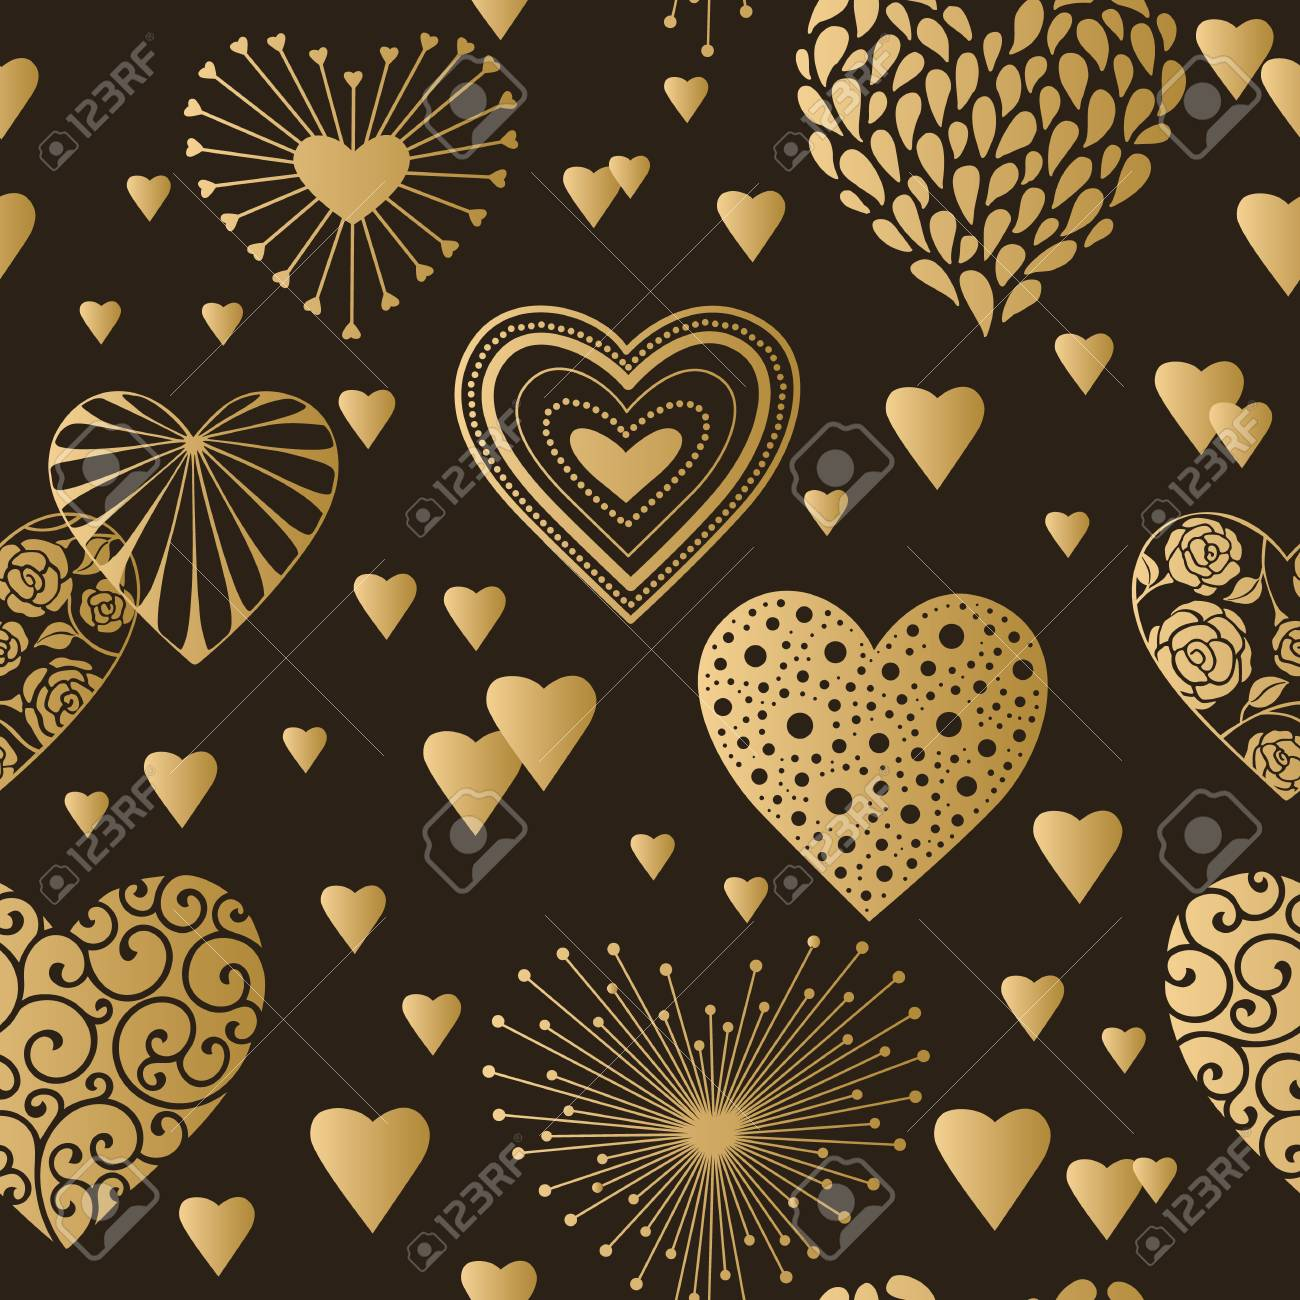 Wallpaper Design Cute Hearts Seamless Background Valentines Day Ornament Golden On Black Romantic Tiled Pattern For